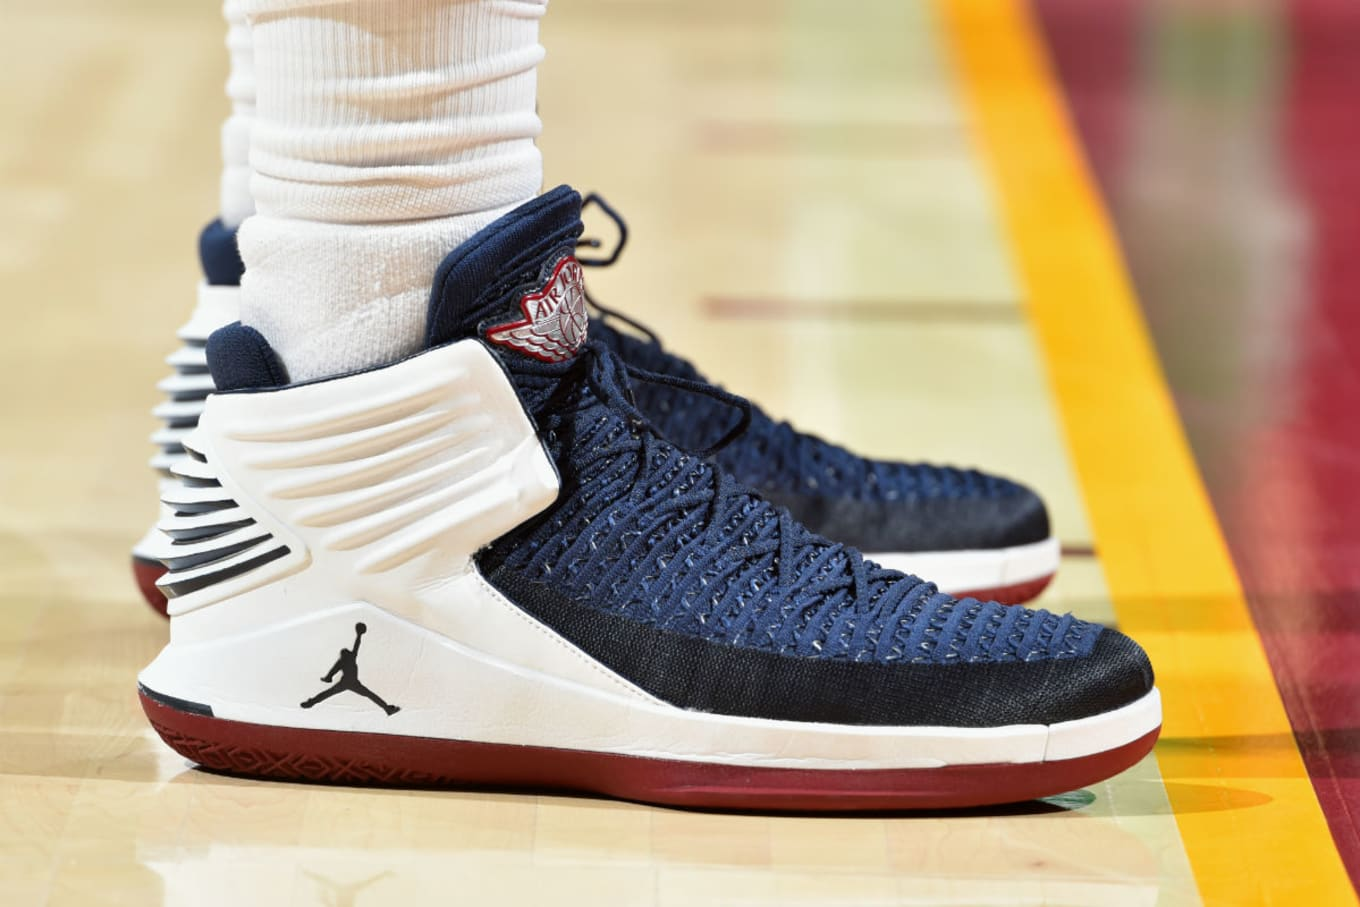 d0fc2f1f8547 Jeff Green Air Jordan 32 Cavs PE